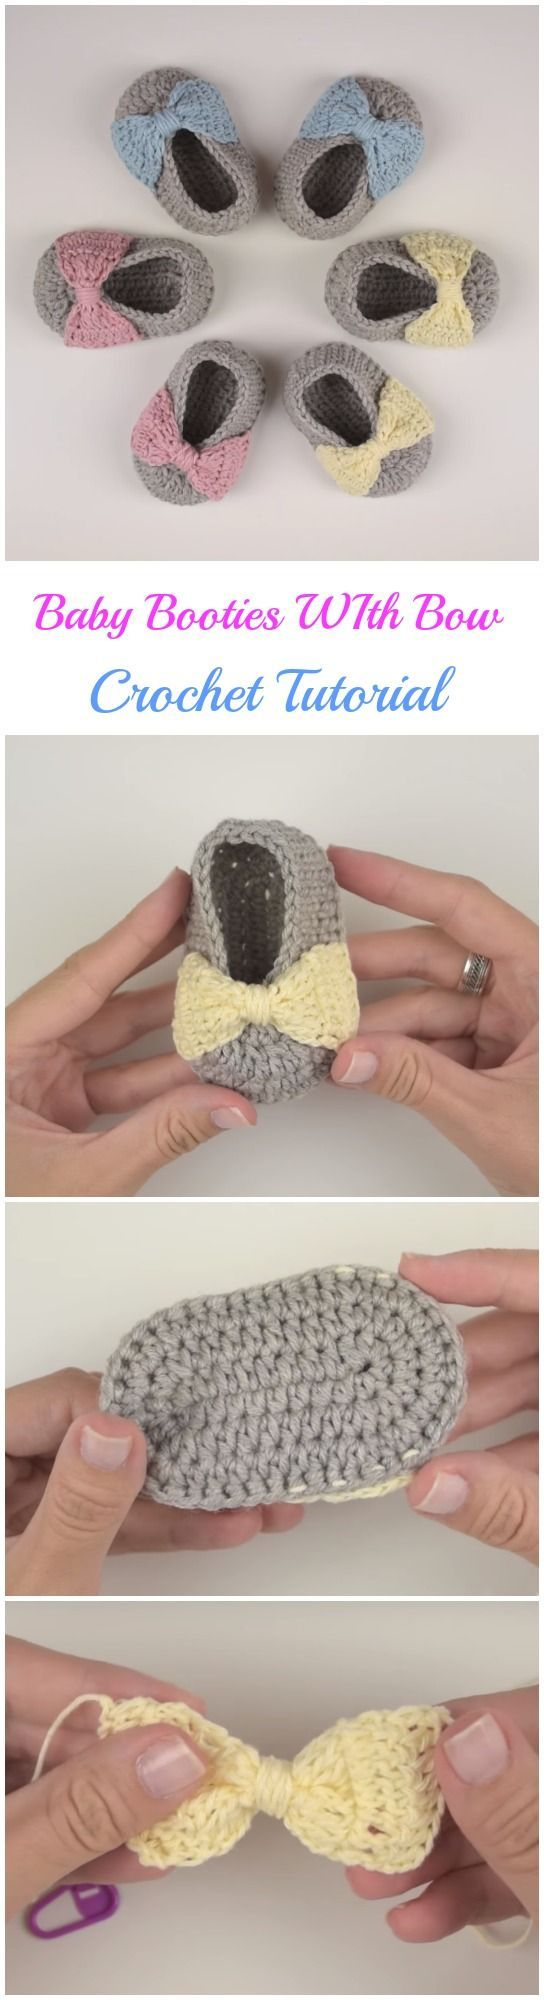 Crochet Baby Booties with Bow | Tejidos | Pinterest | Tejido